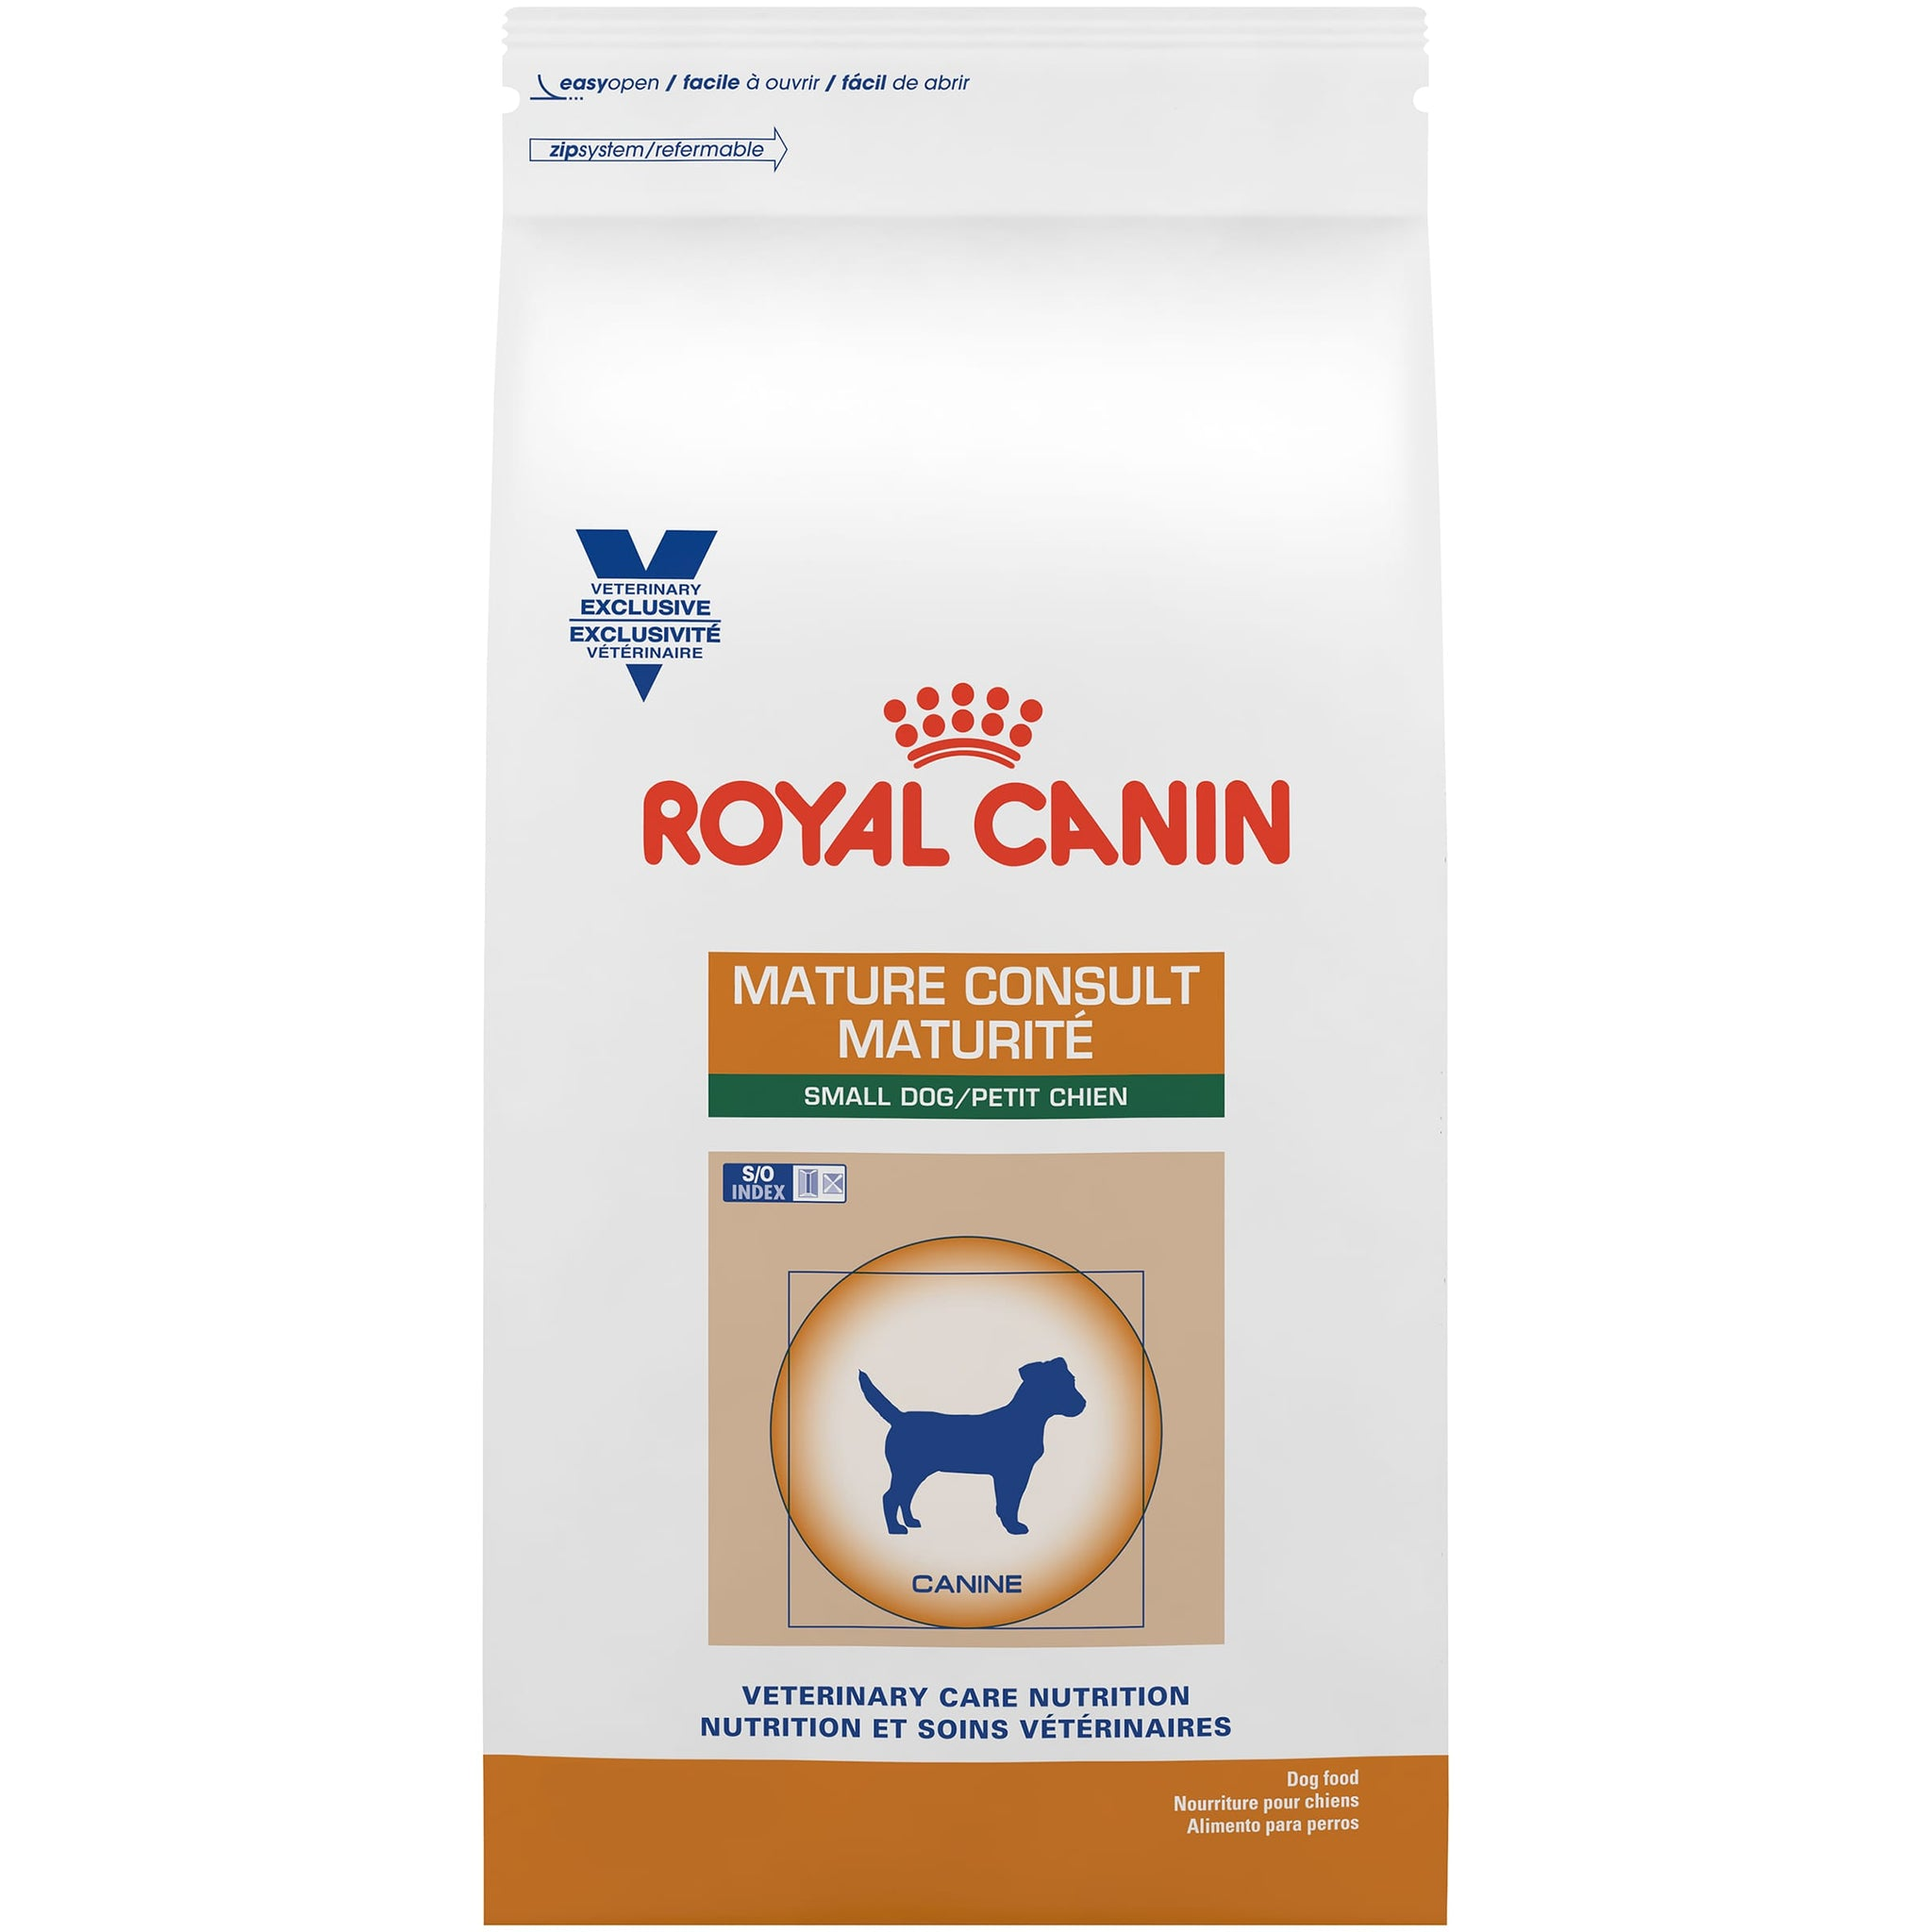 Royal Canin Mature Consult Small Dog - Alimento para Perro